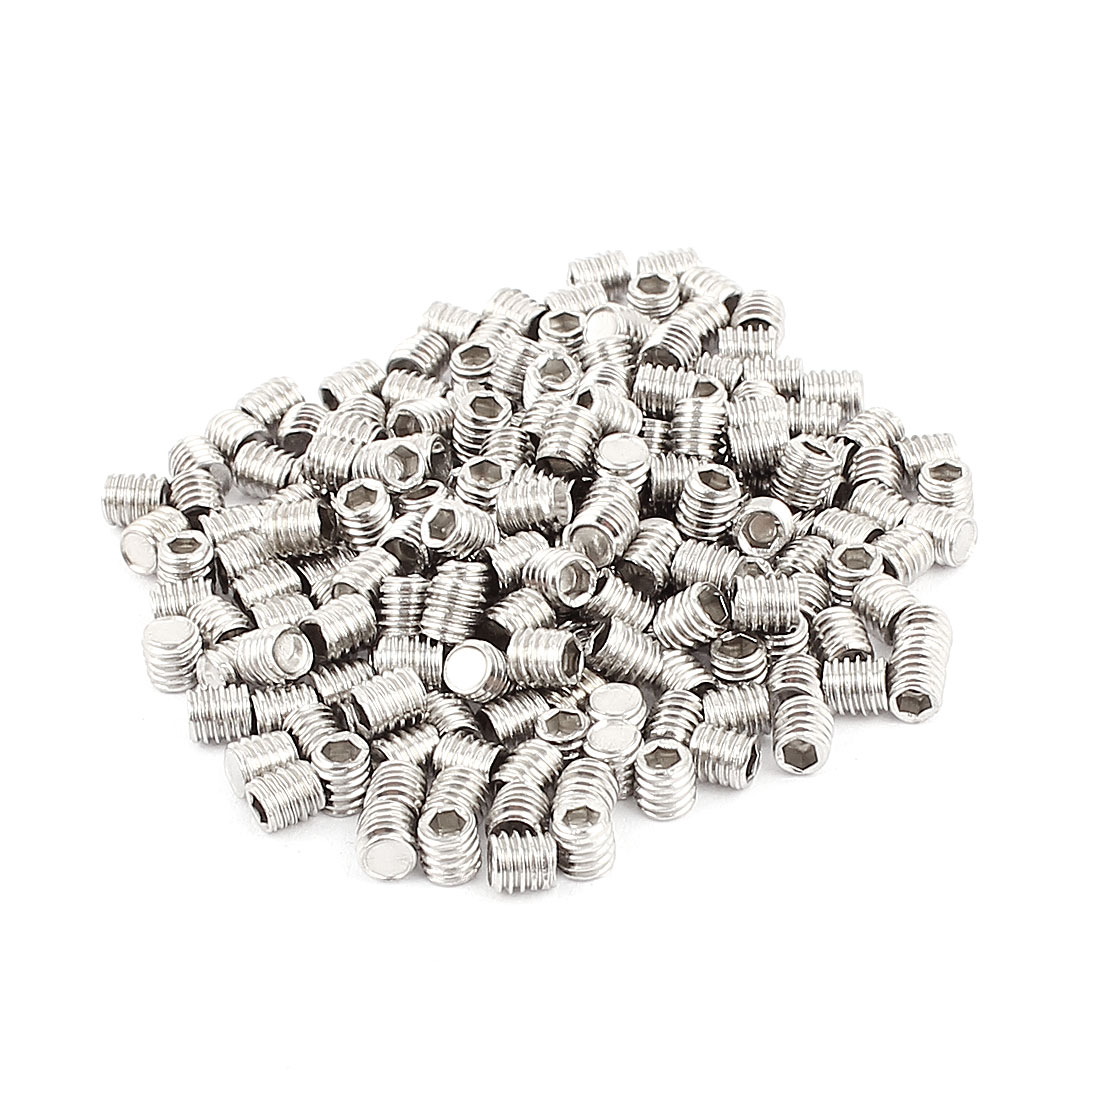 200pcs Stainless Steel M4x4mm Head Hex Socket Set Grub Screws